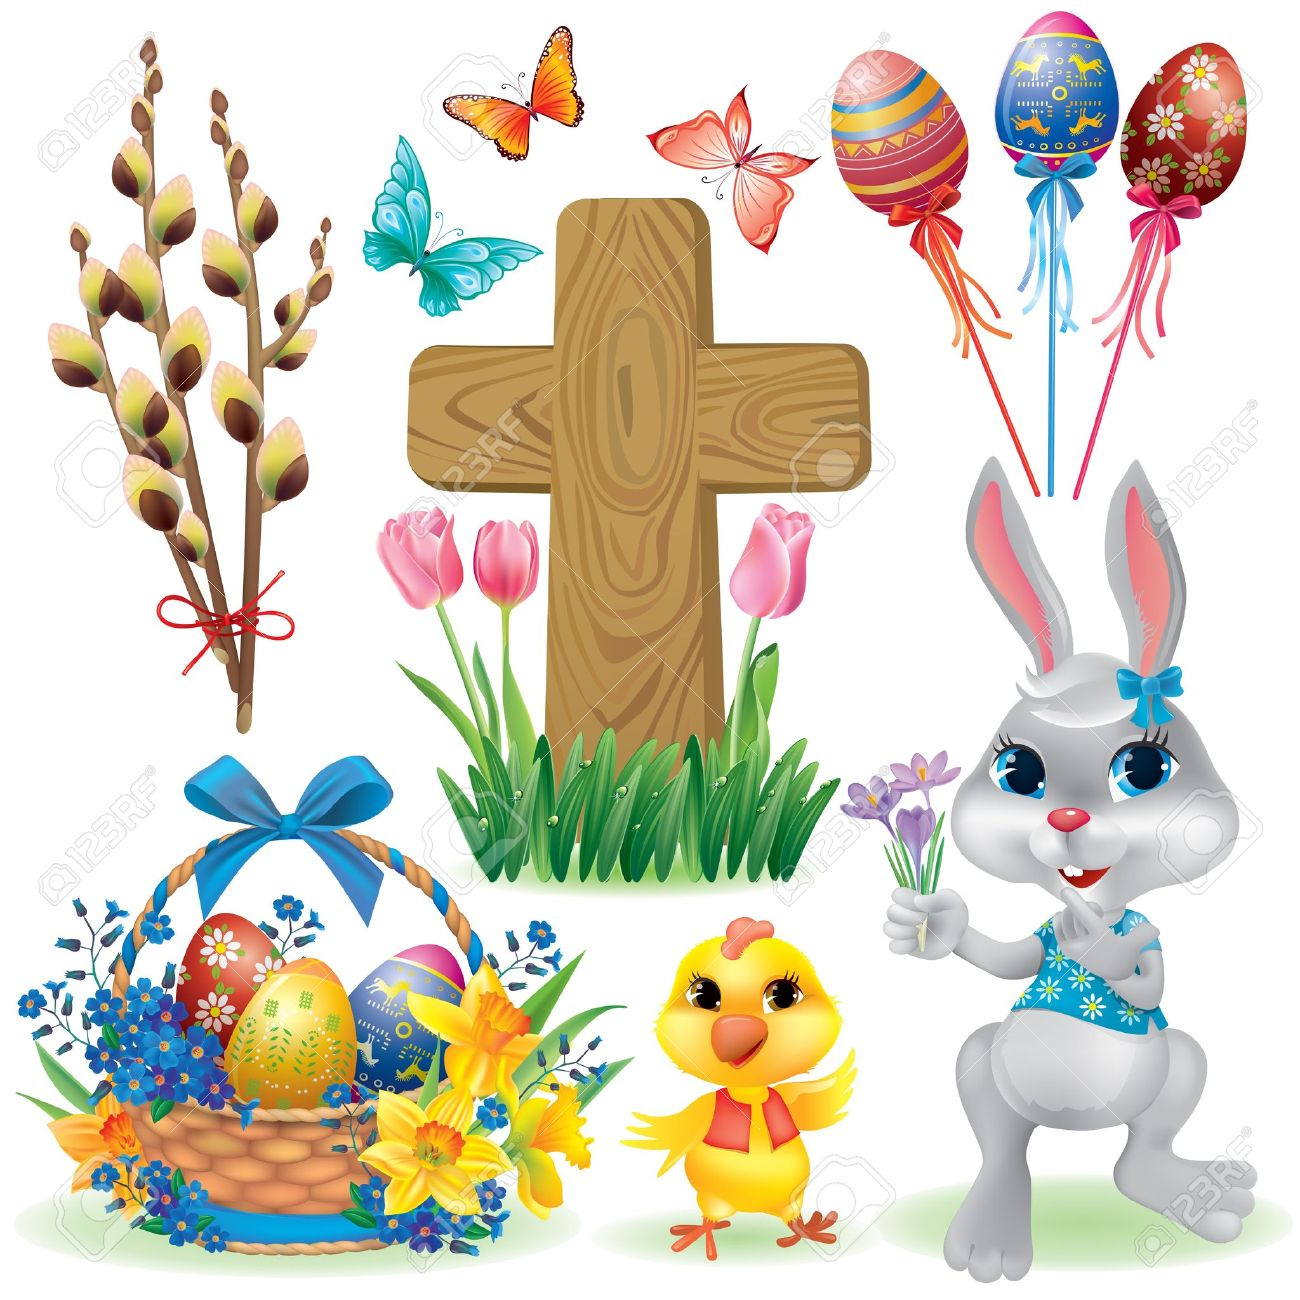 Easter symbols set. Contains transparent objects. Stock Vector - 17321970